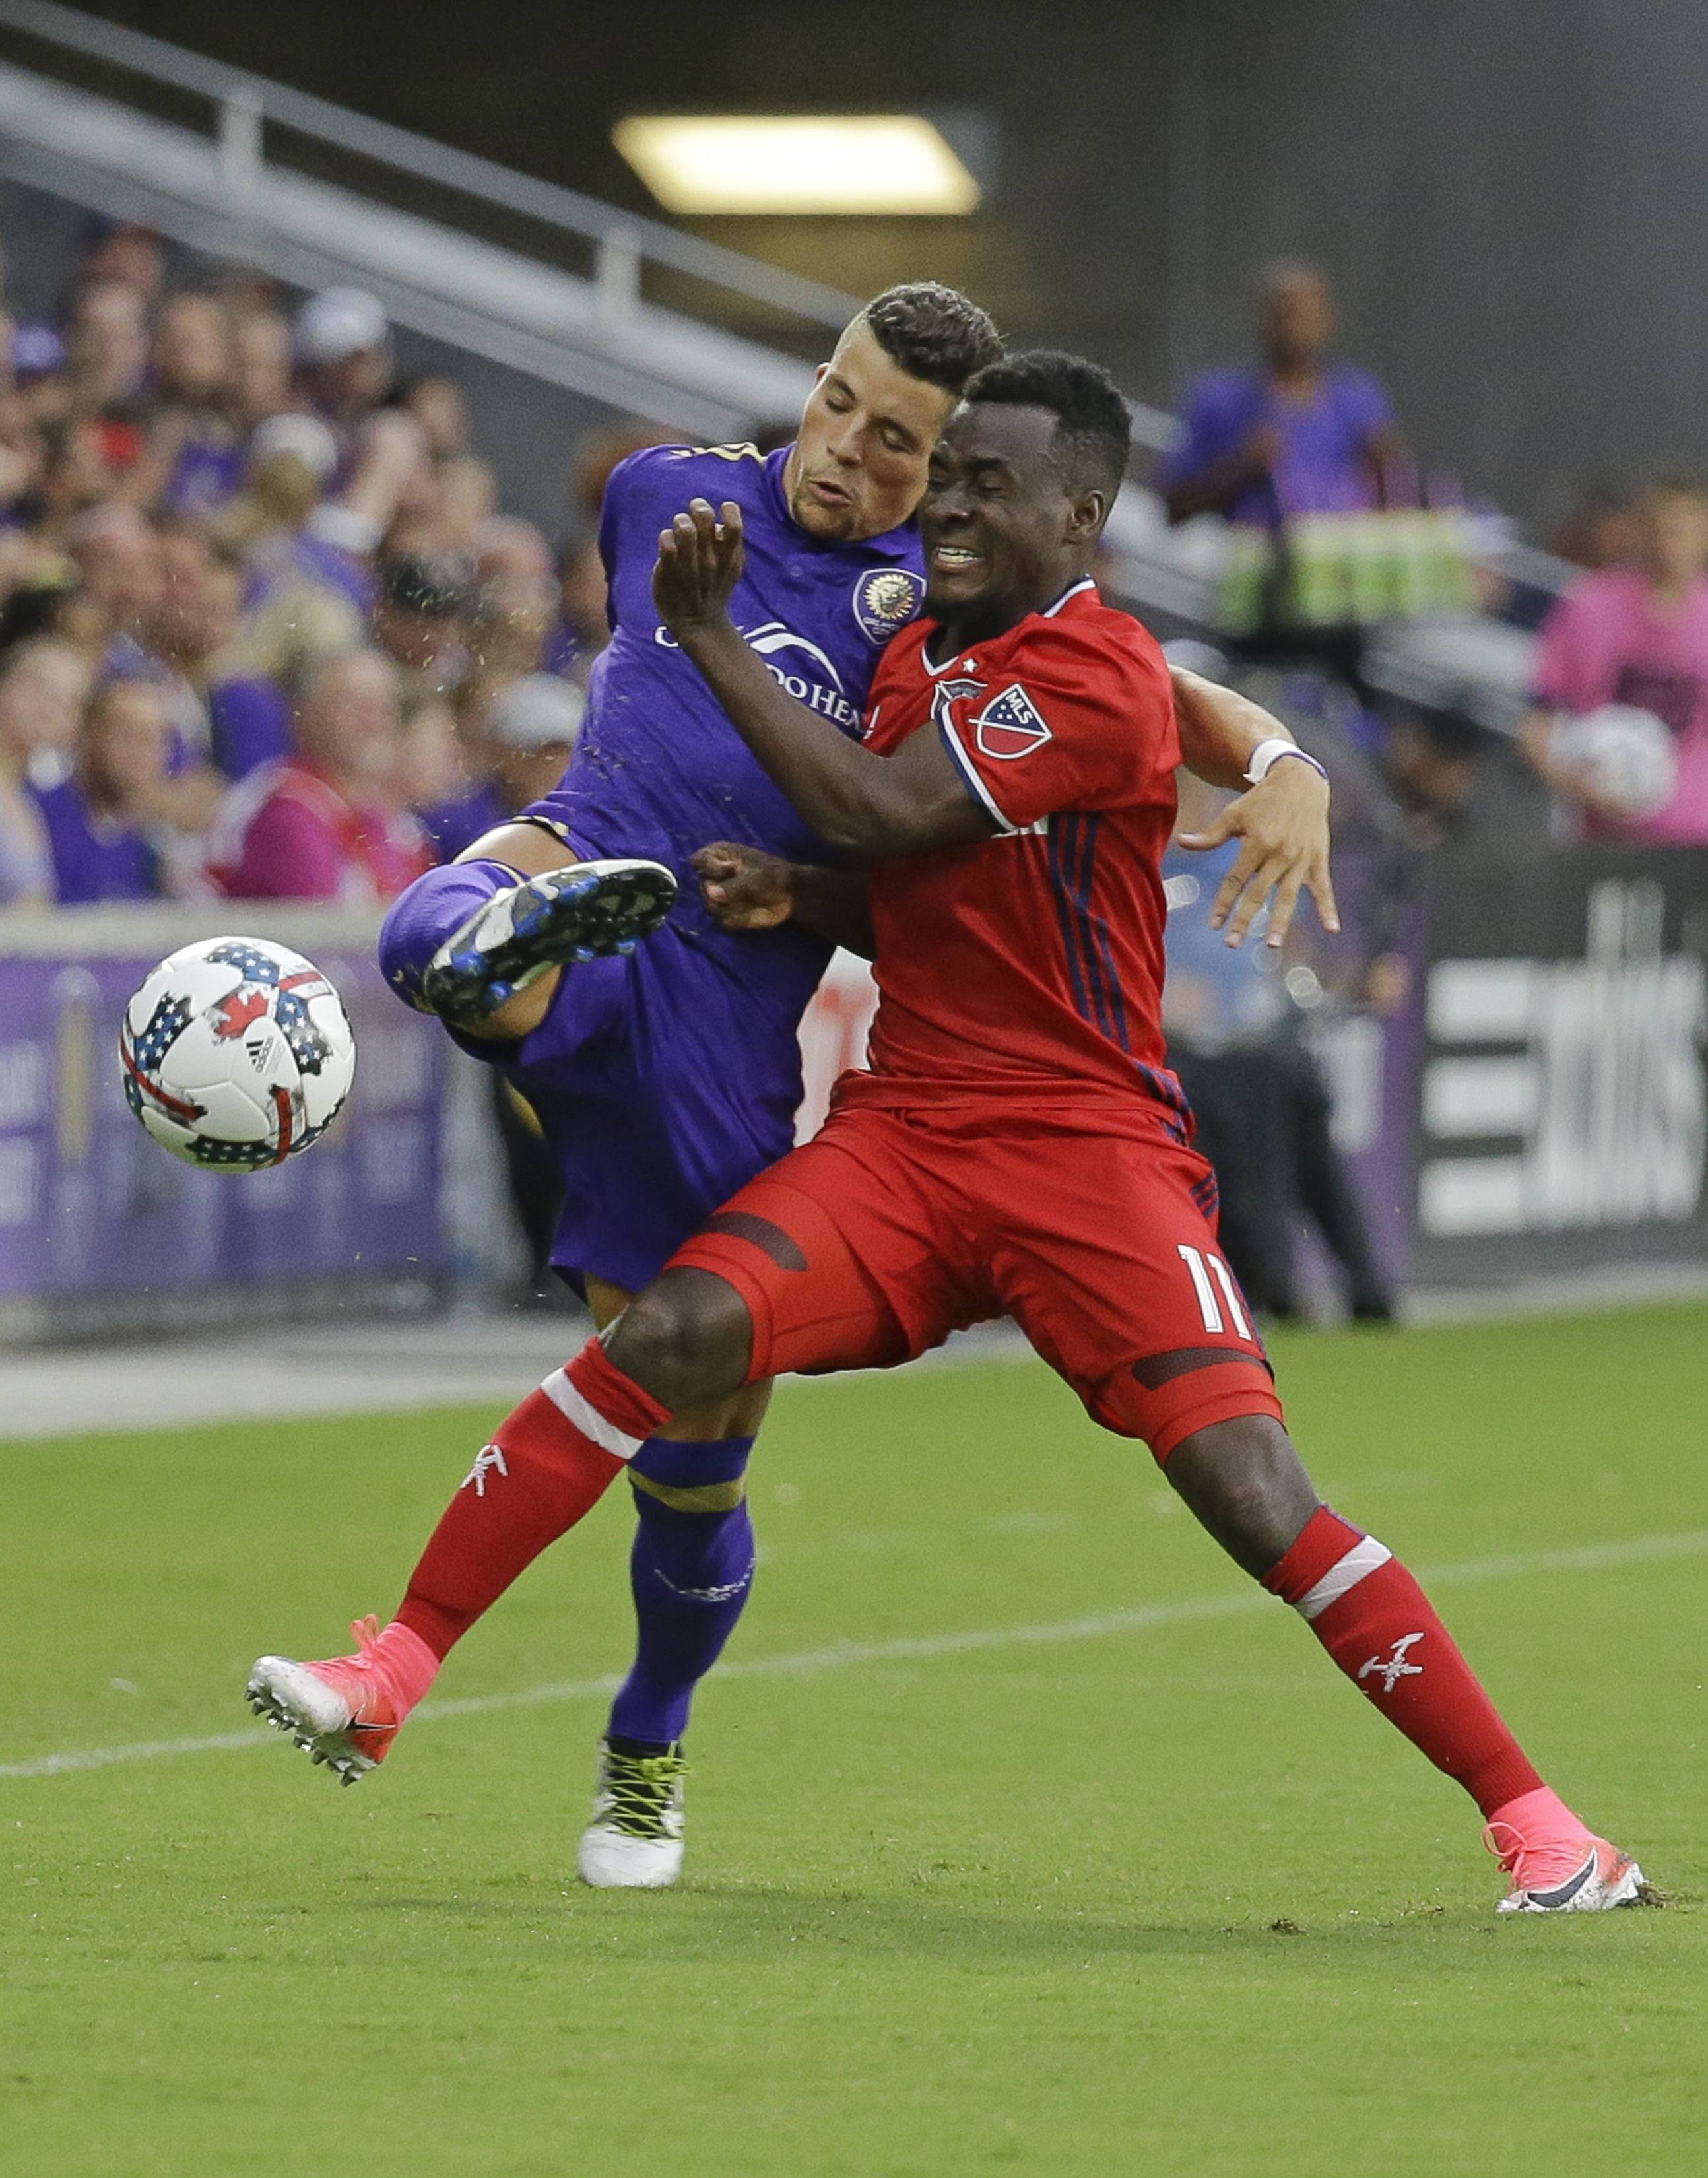 Despite not starting the past two games, Chicago Fire's David Accam (11) is tied for third in the MSL with 12 goals. He also has 7 assists this season.